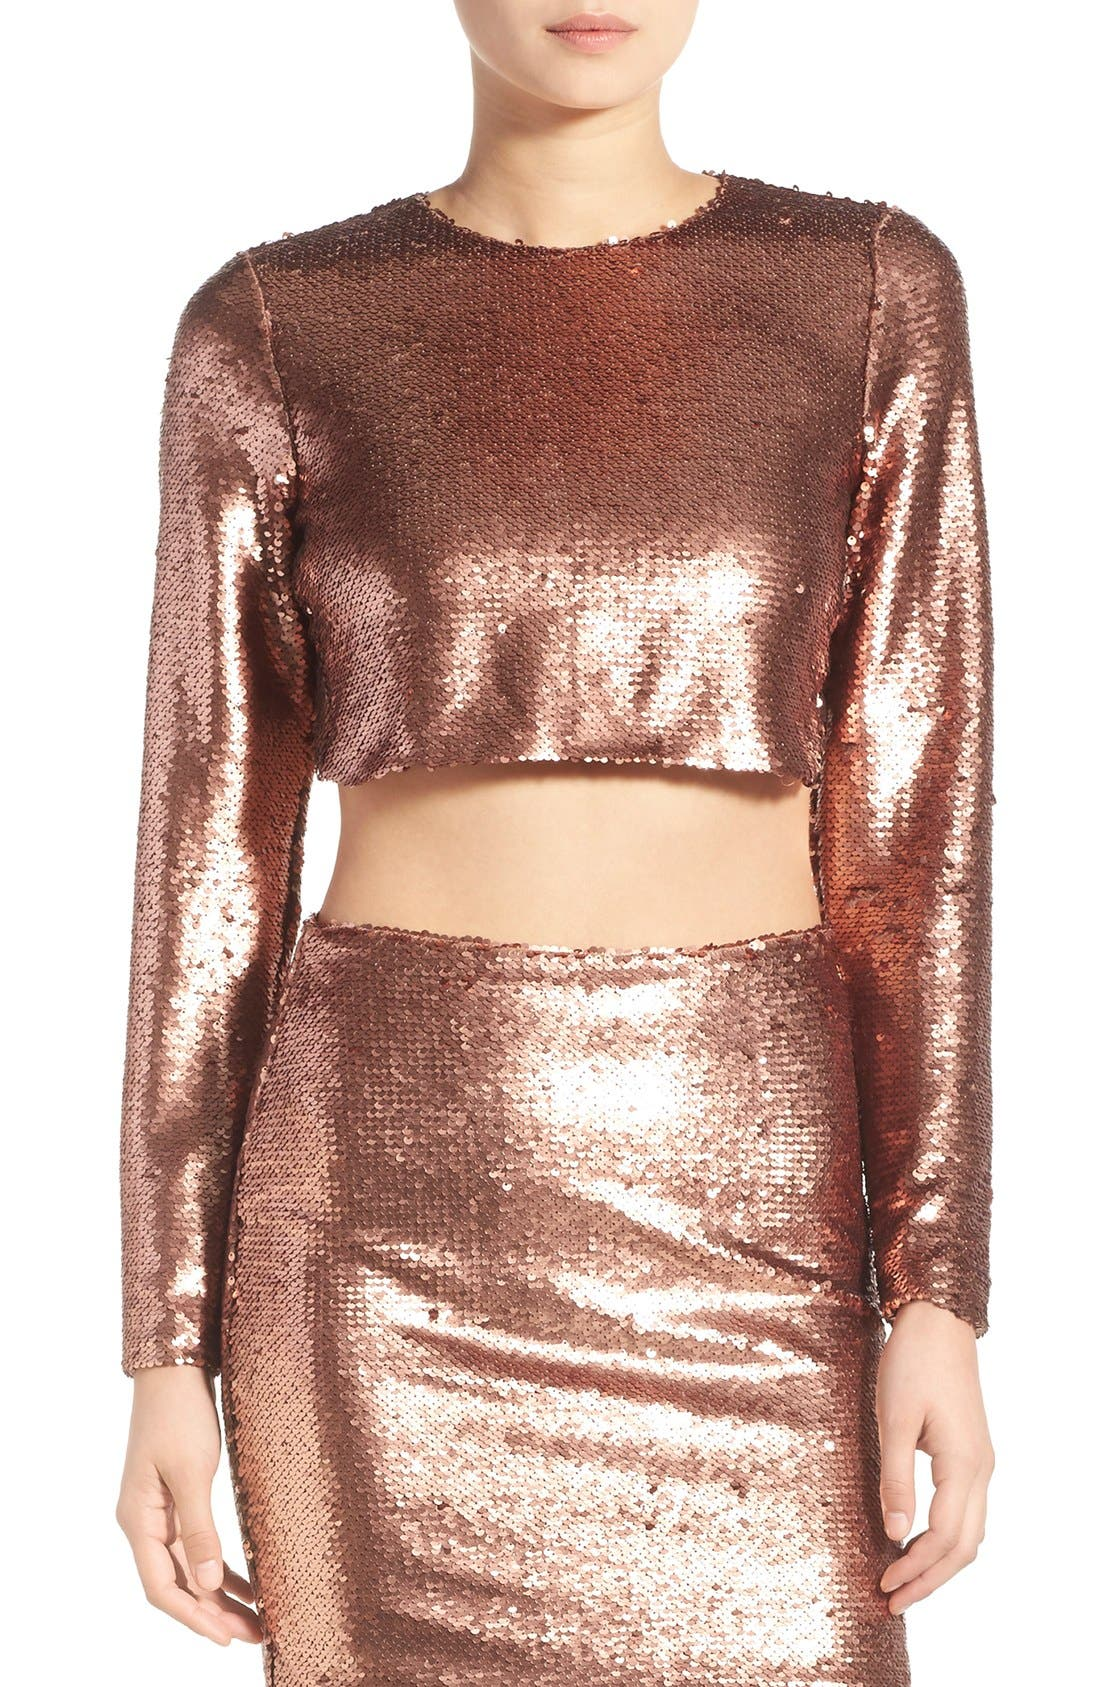 Alternate Image 1 Selected - Missguided Sequin Crop Top